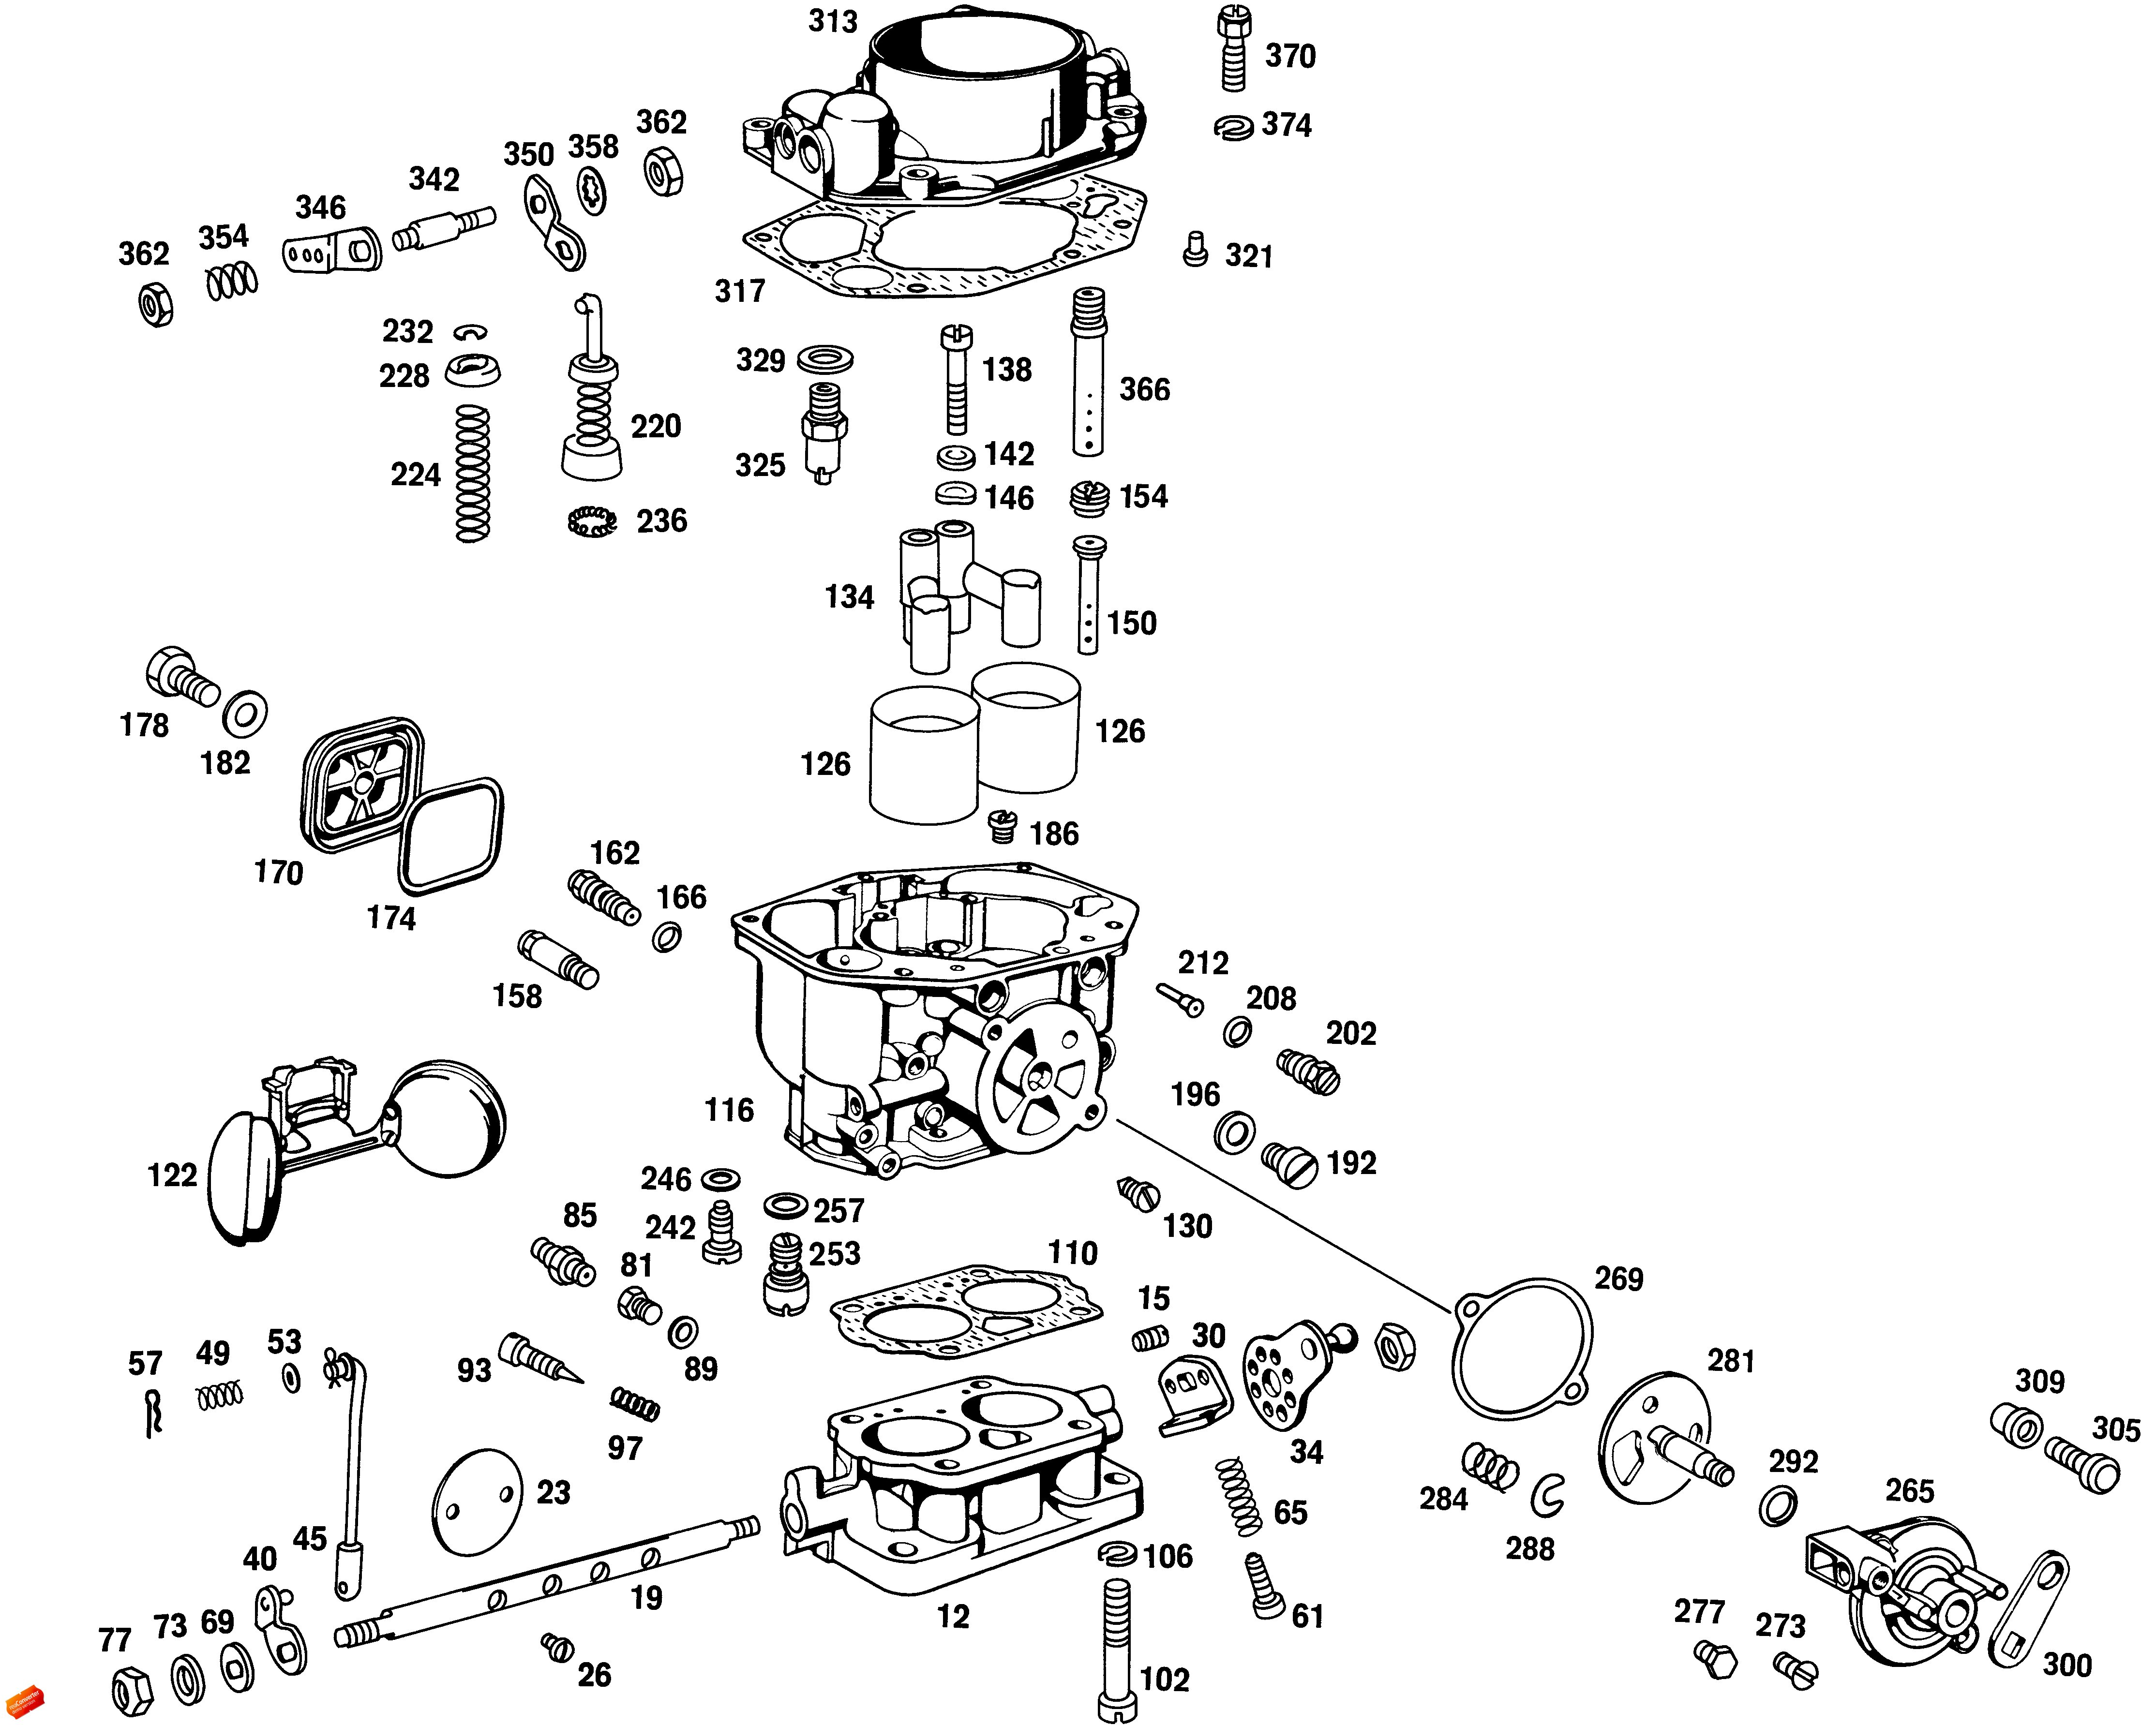 82 Chevy K10 Vacuum Diagram Not Lossing Wiring 87 K20 Monte Carlo Frame And Fuse Box 1962